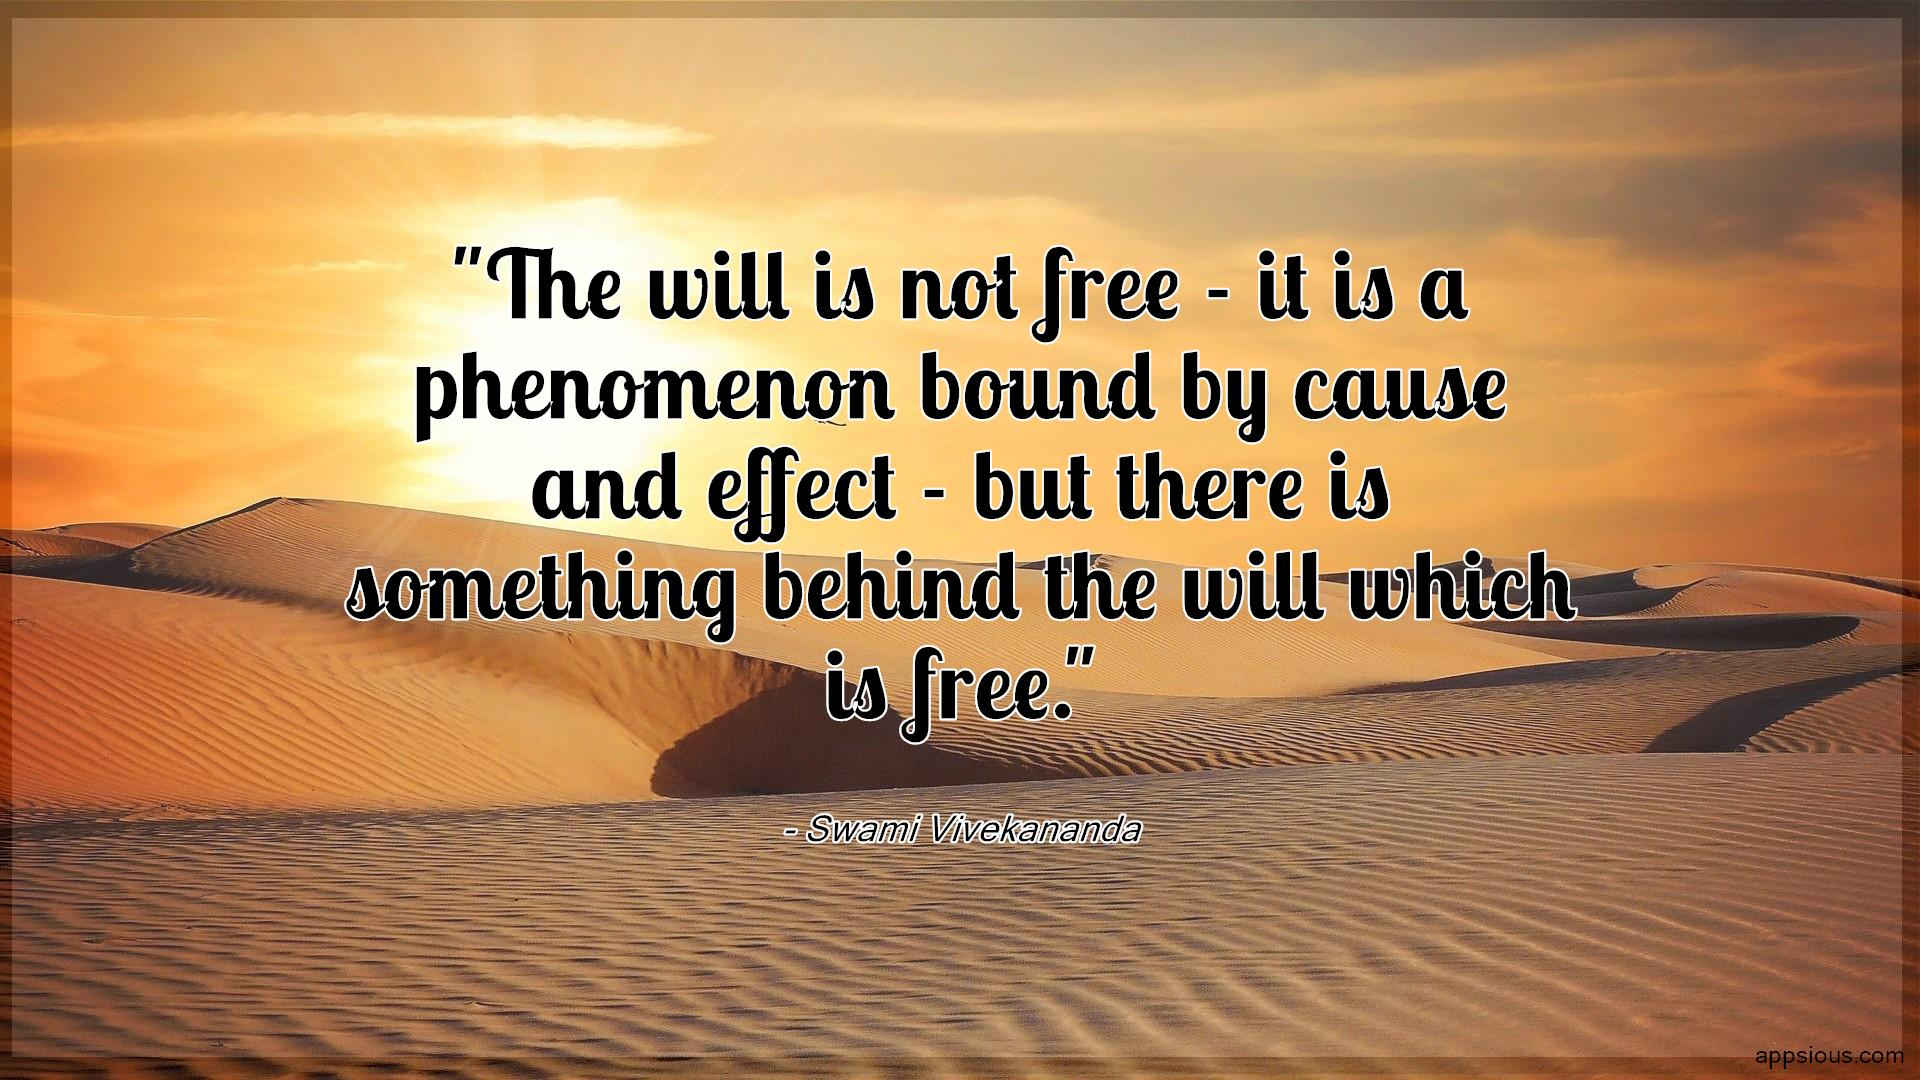 The will is not free - it is a phenomenon bound by cause and effect - but there is something behind the will which is free.